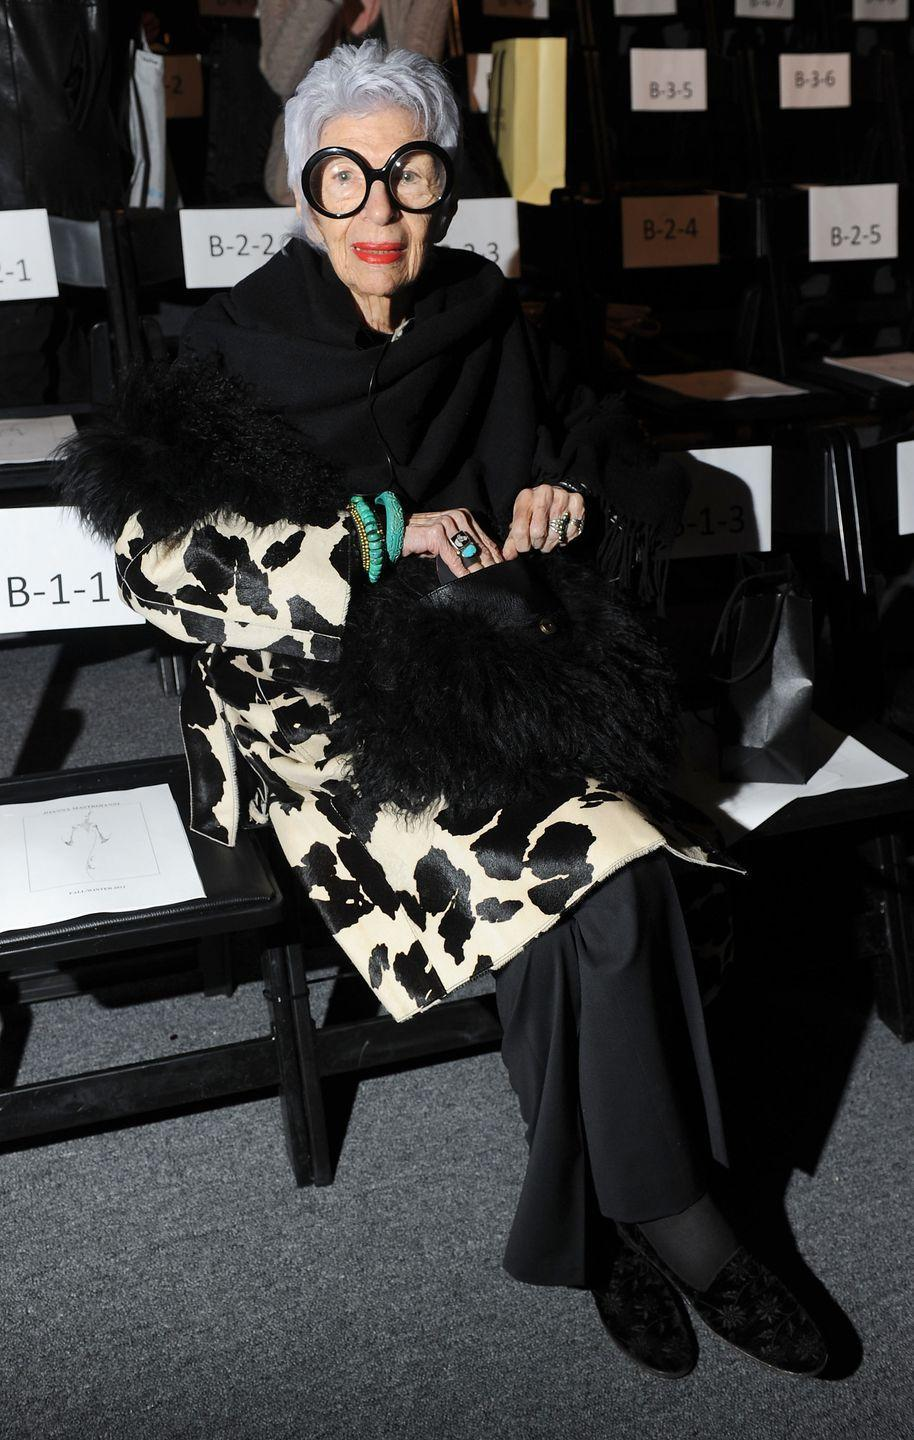 <p>Iris is photographed sitting front row at the Joanna Mastroianni fall fashion show in New York City wearing a spotted black-and-white coat and turquoise jewelry.<br></p>